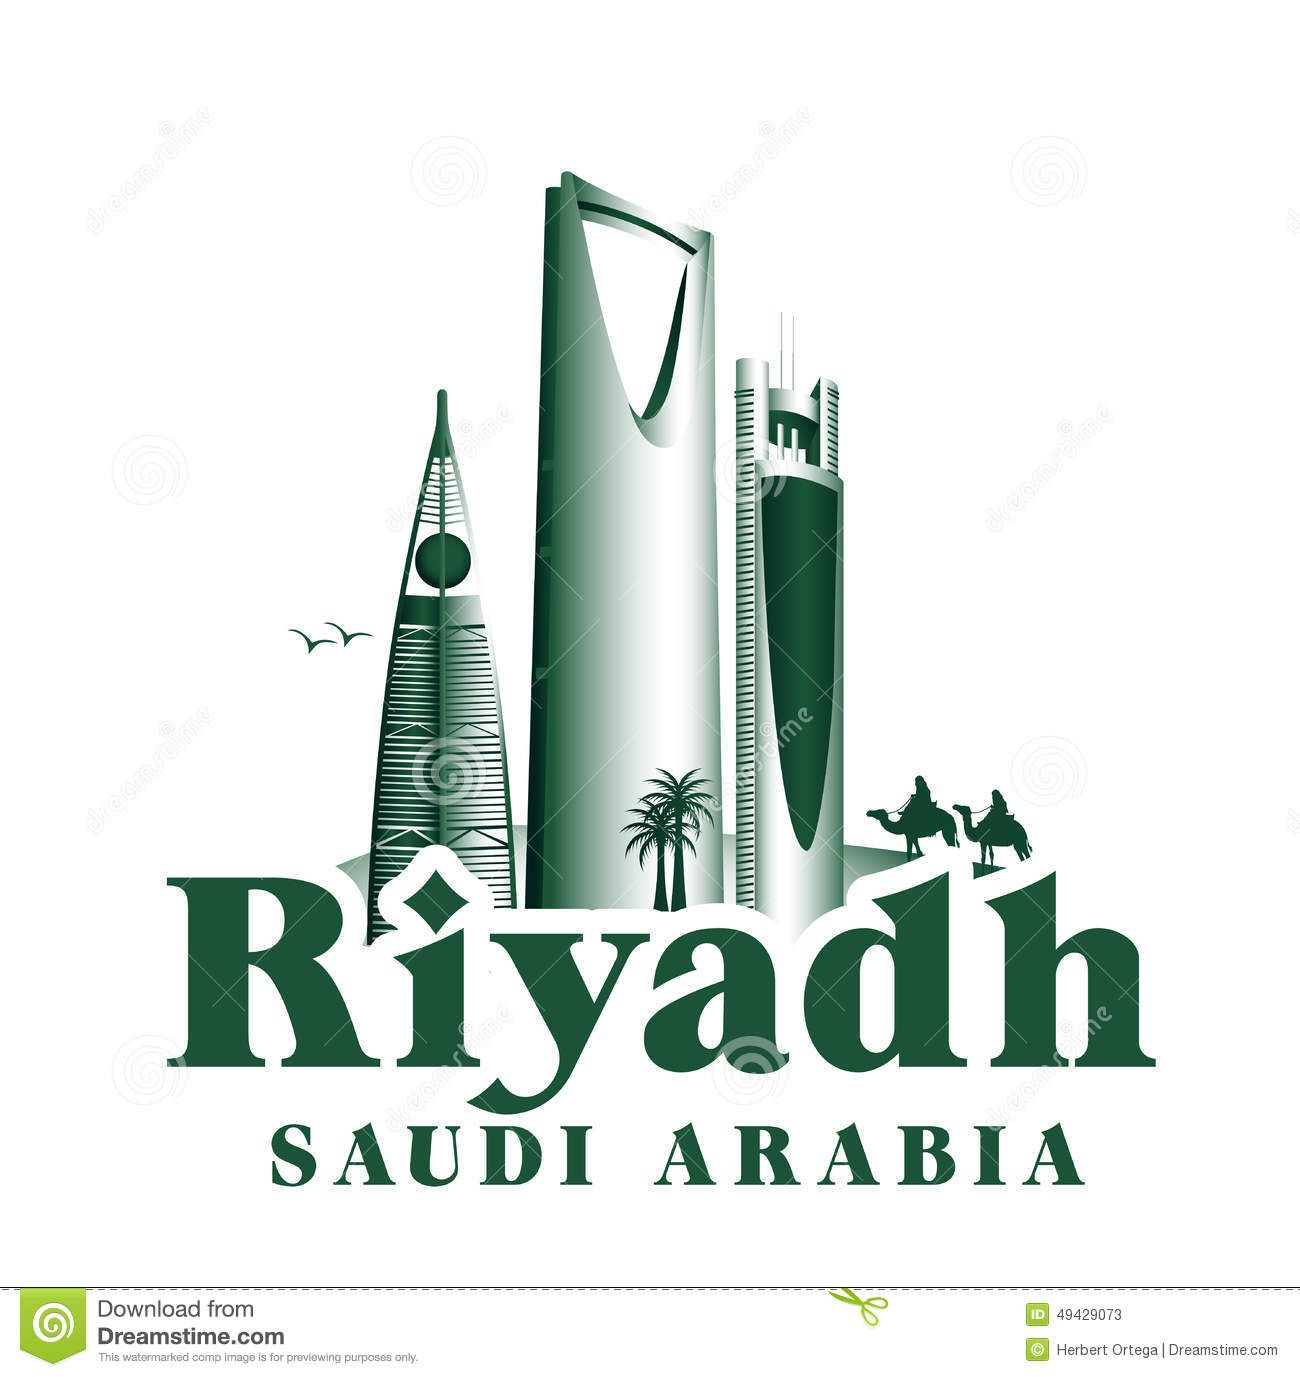 Saudi Arabia Skyline Illustration Google Search Riyadh Saudi Arabia Saudi Arabia Vector Illustration